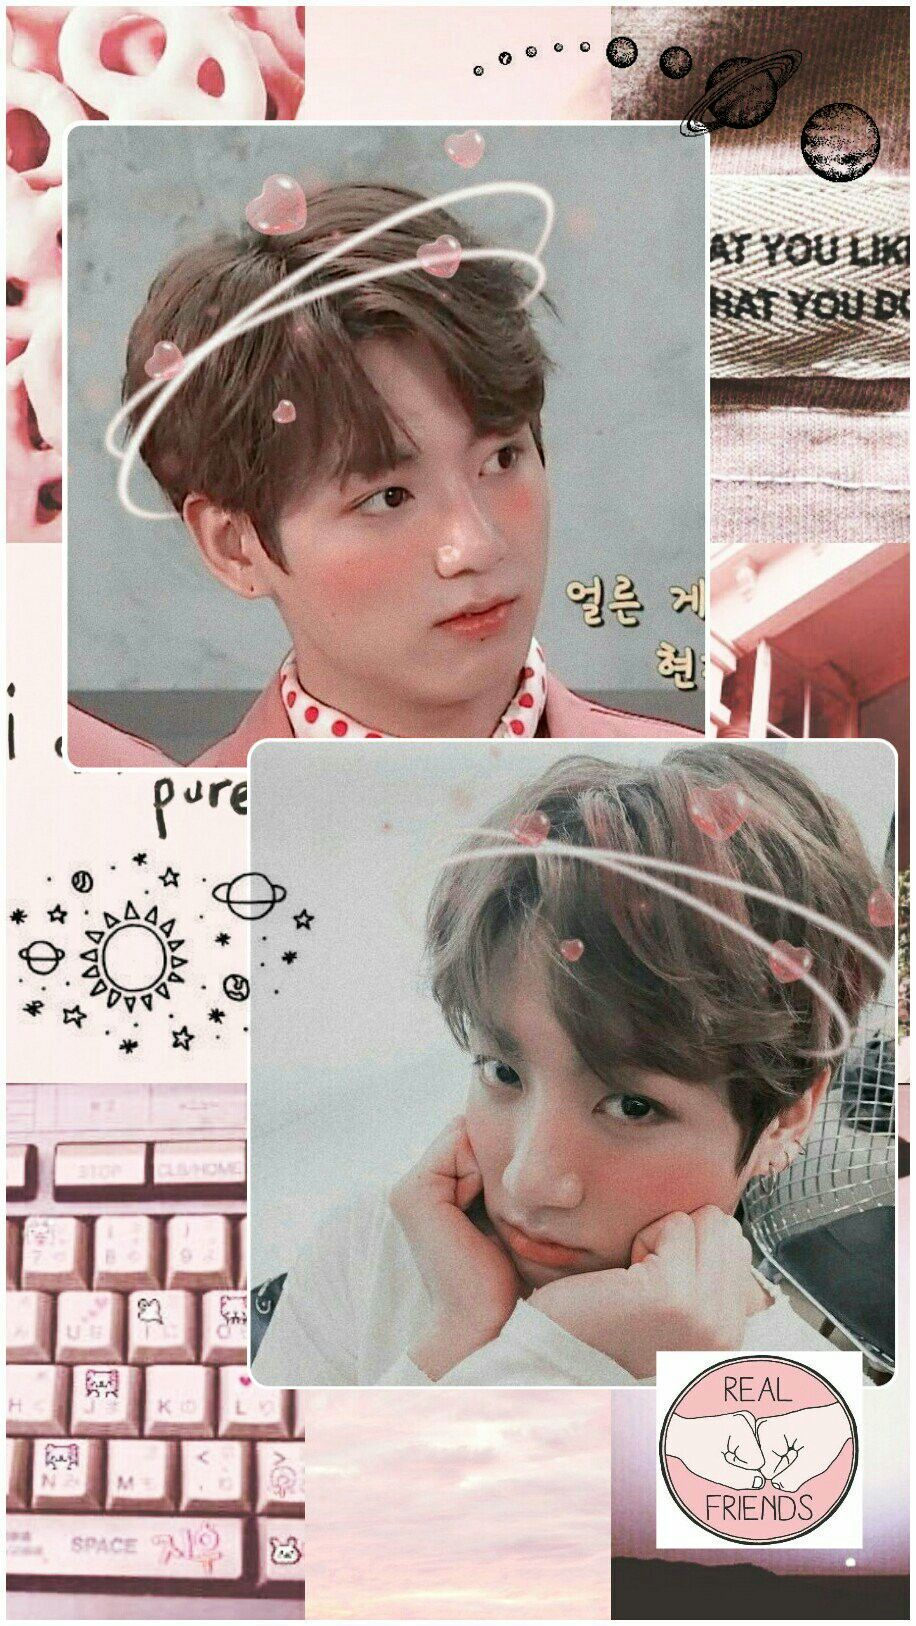 Jungkook Wallpaper Bts Bts Wallpaper Bts Bts Jungkook